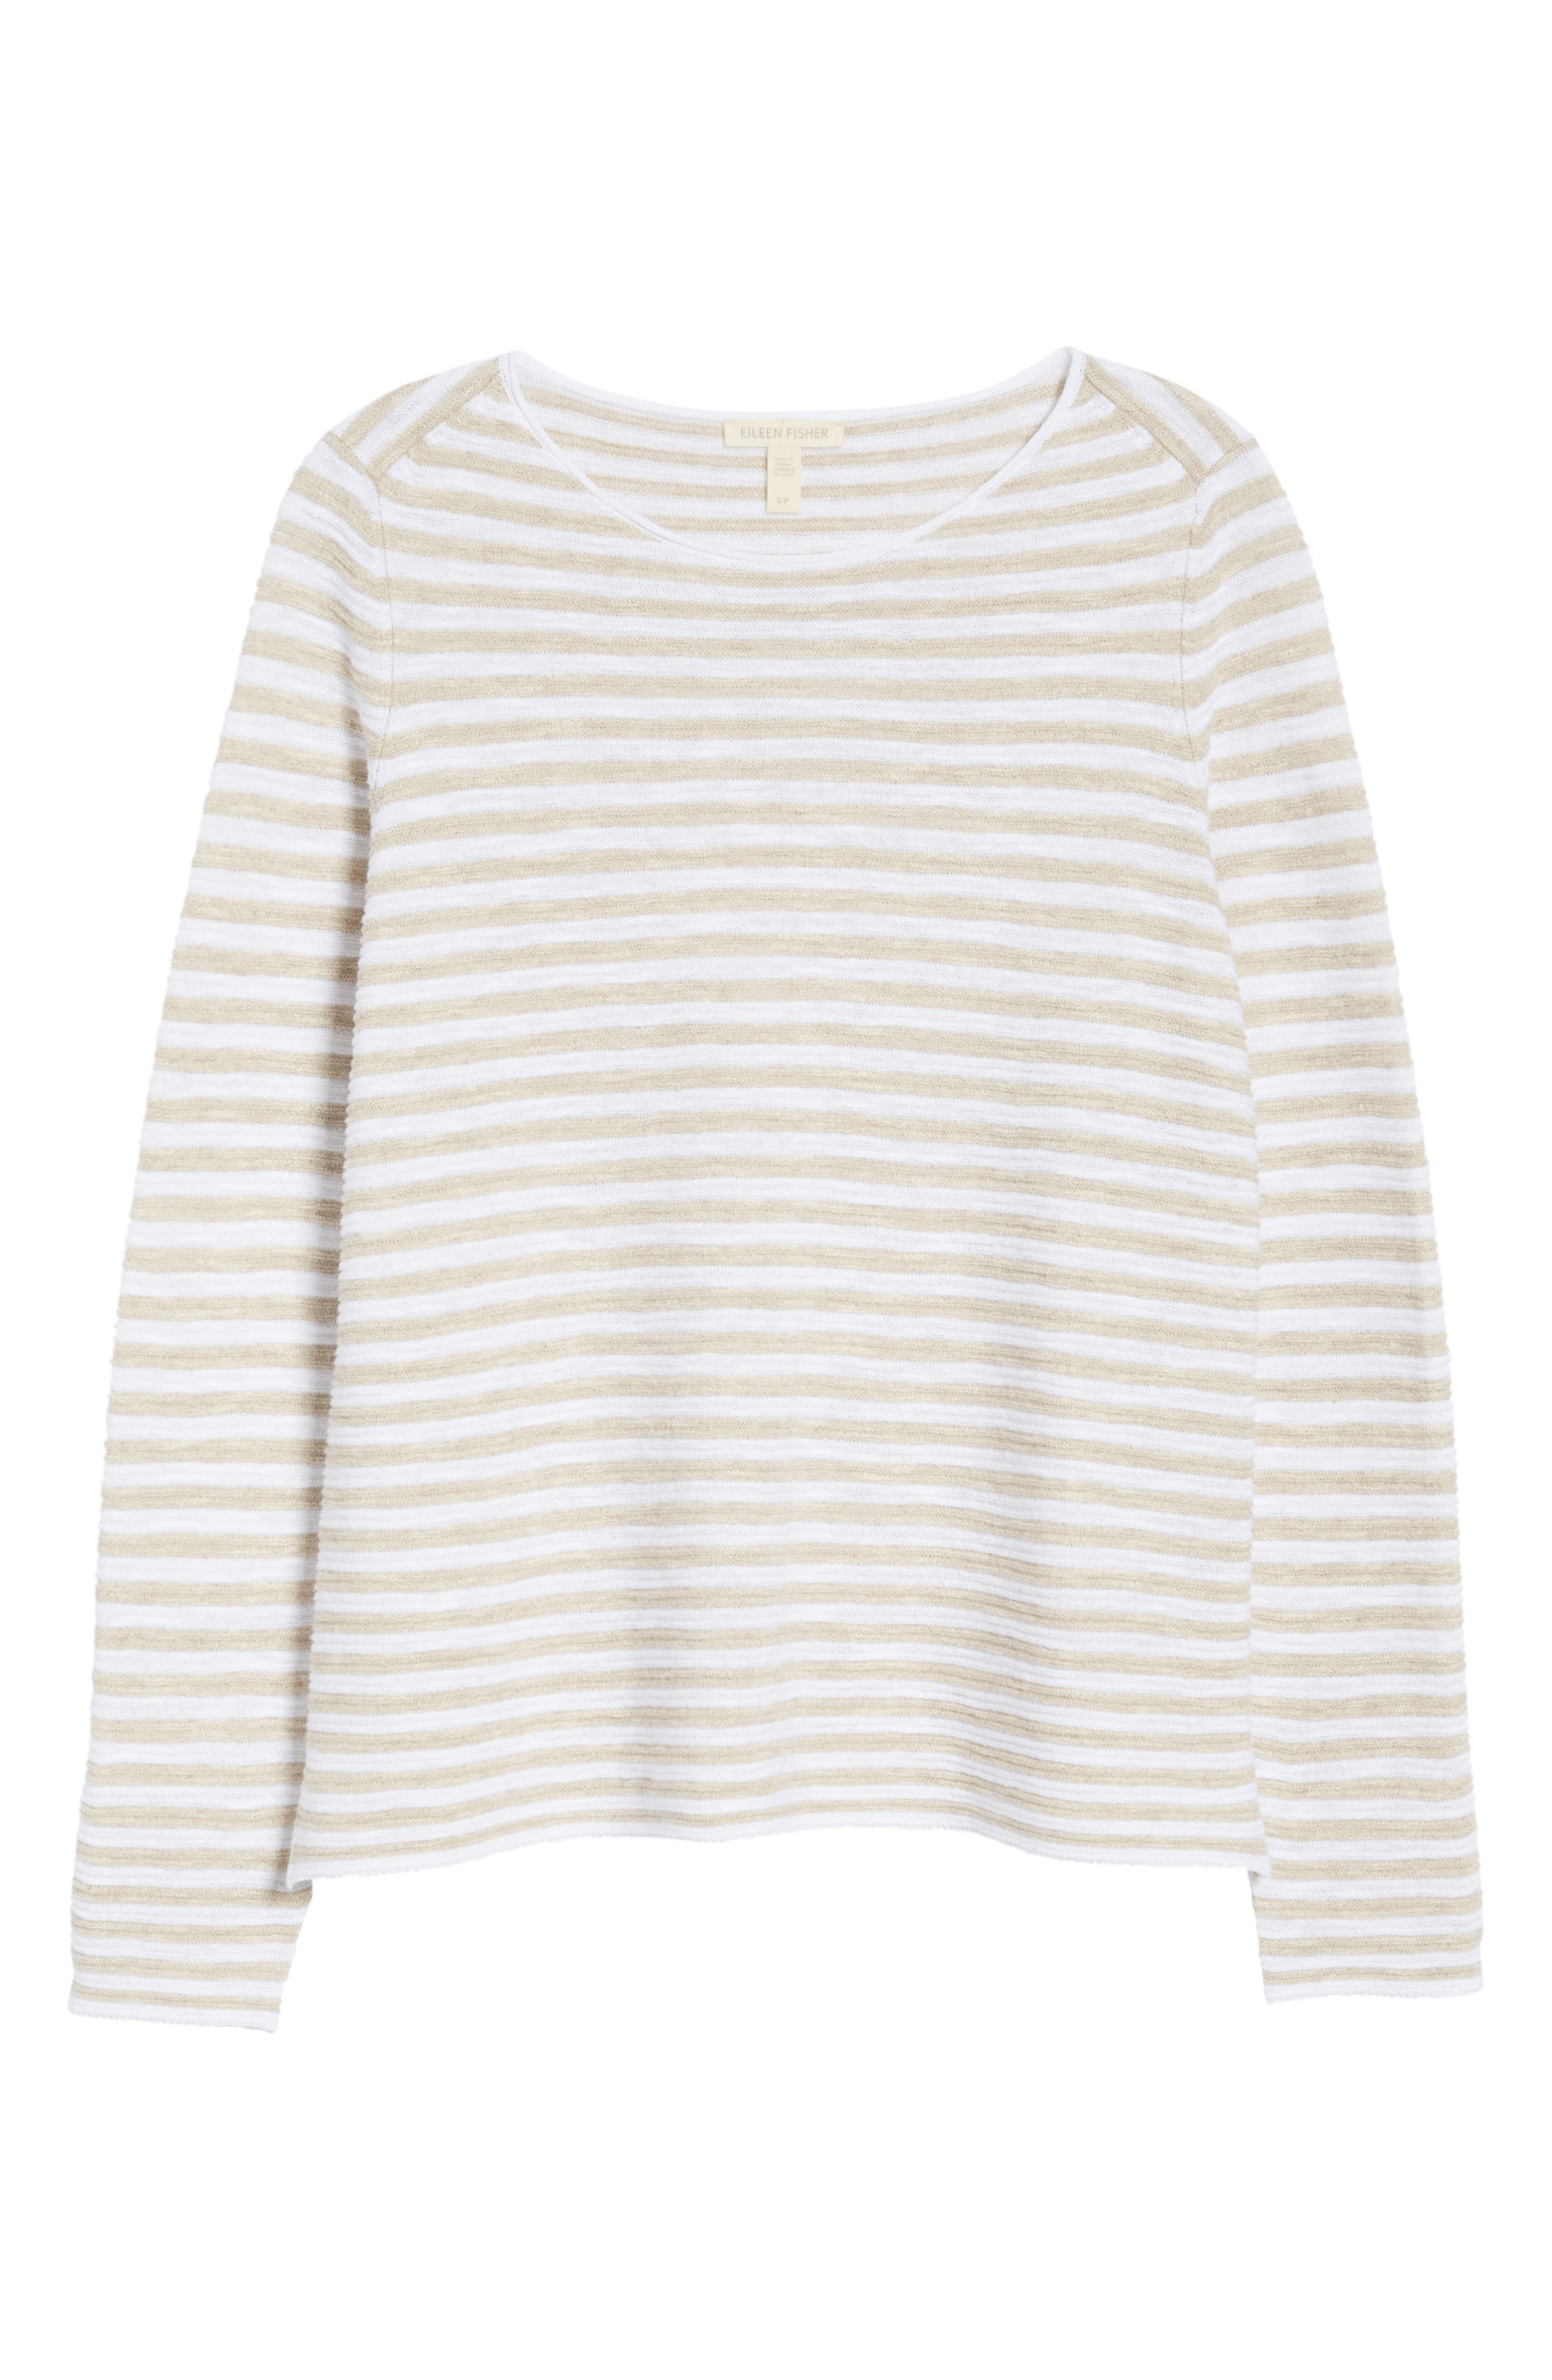 Stripe Organic Linen & Cotton Sweater,                             Alternate thumbnail 7, color,                             White/ Natural